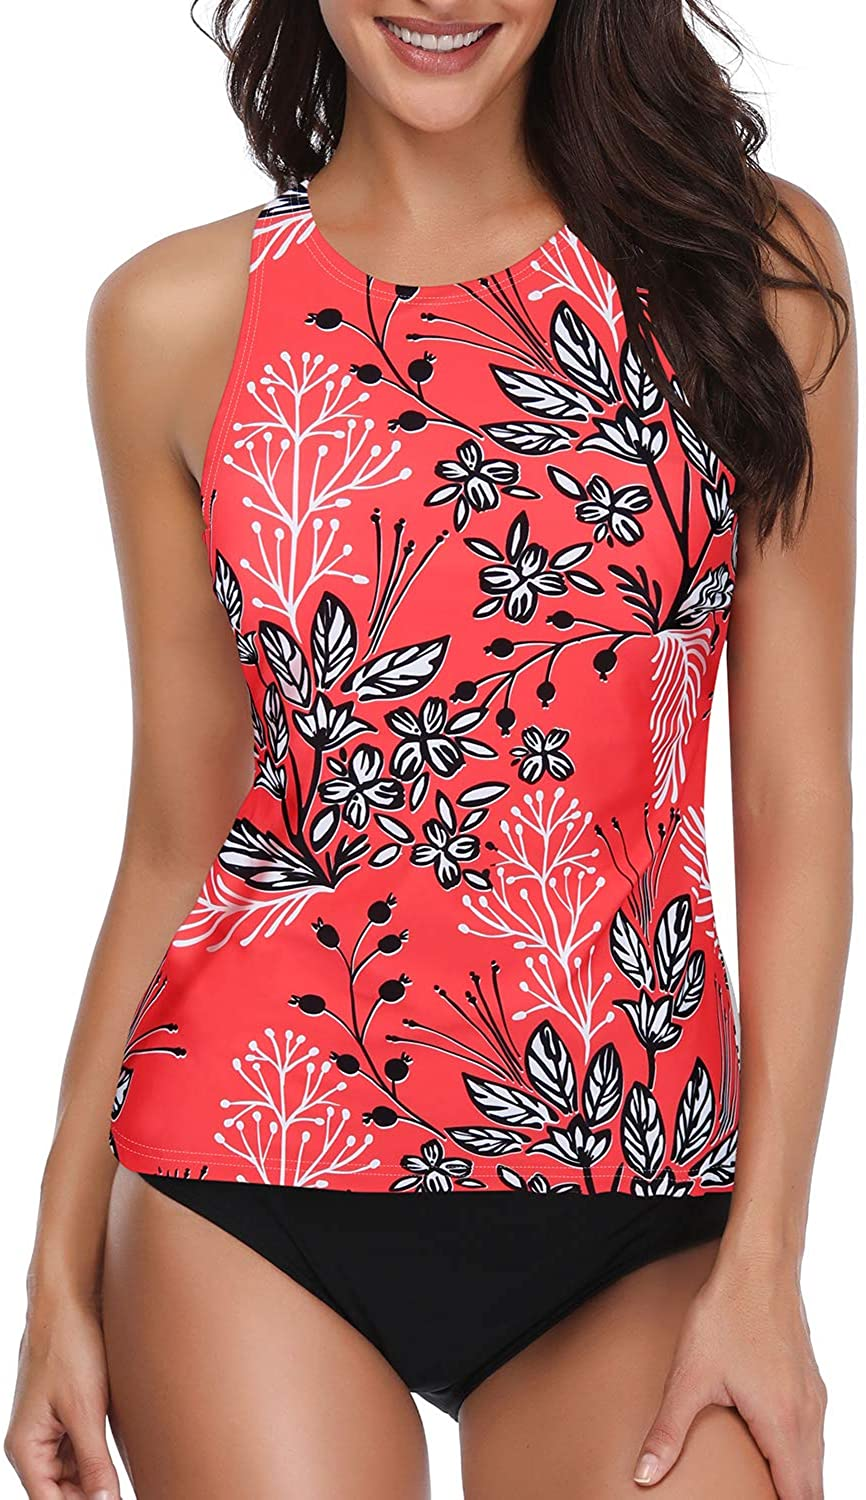 Holipick Tankini Swimsuit